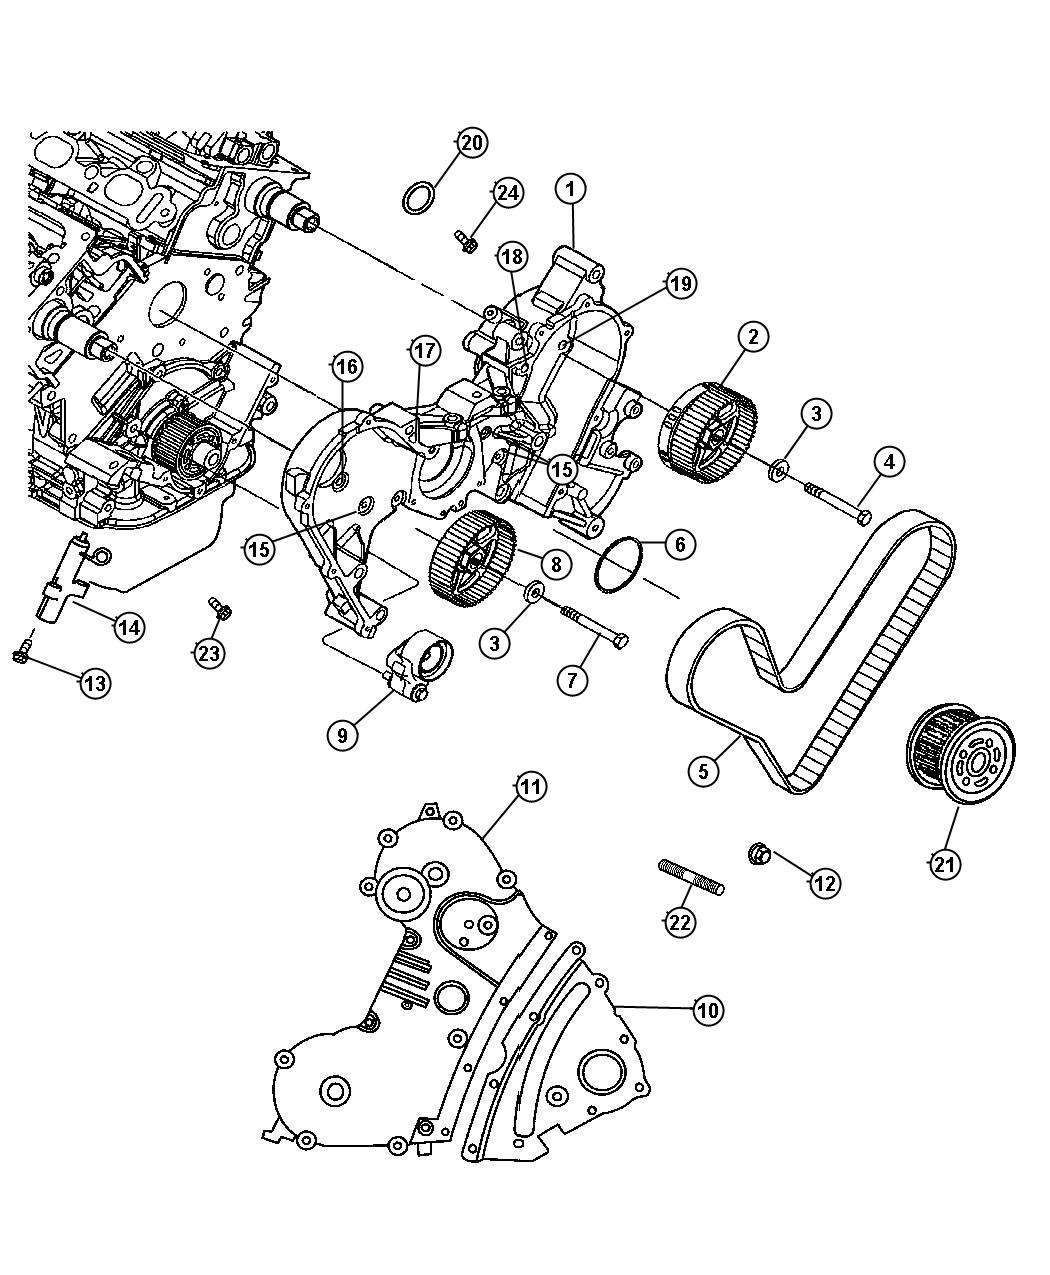 2005 chrysler 300 blower wiring diagram